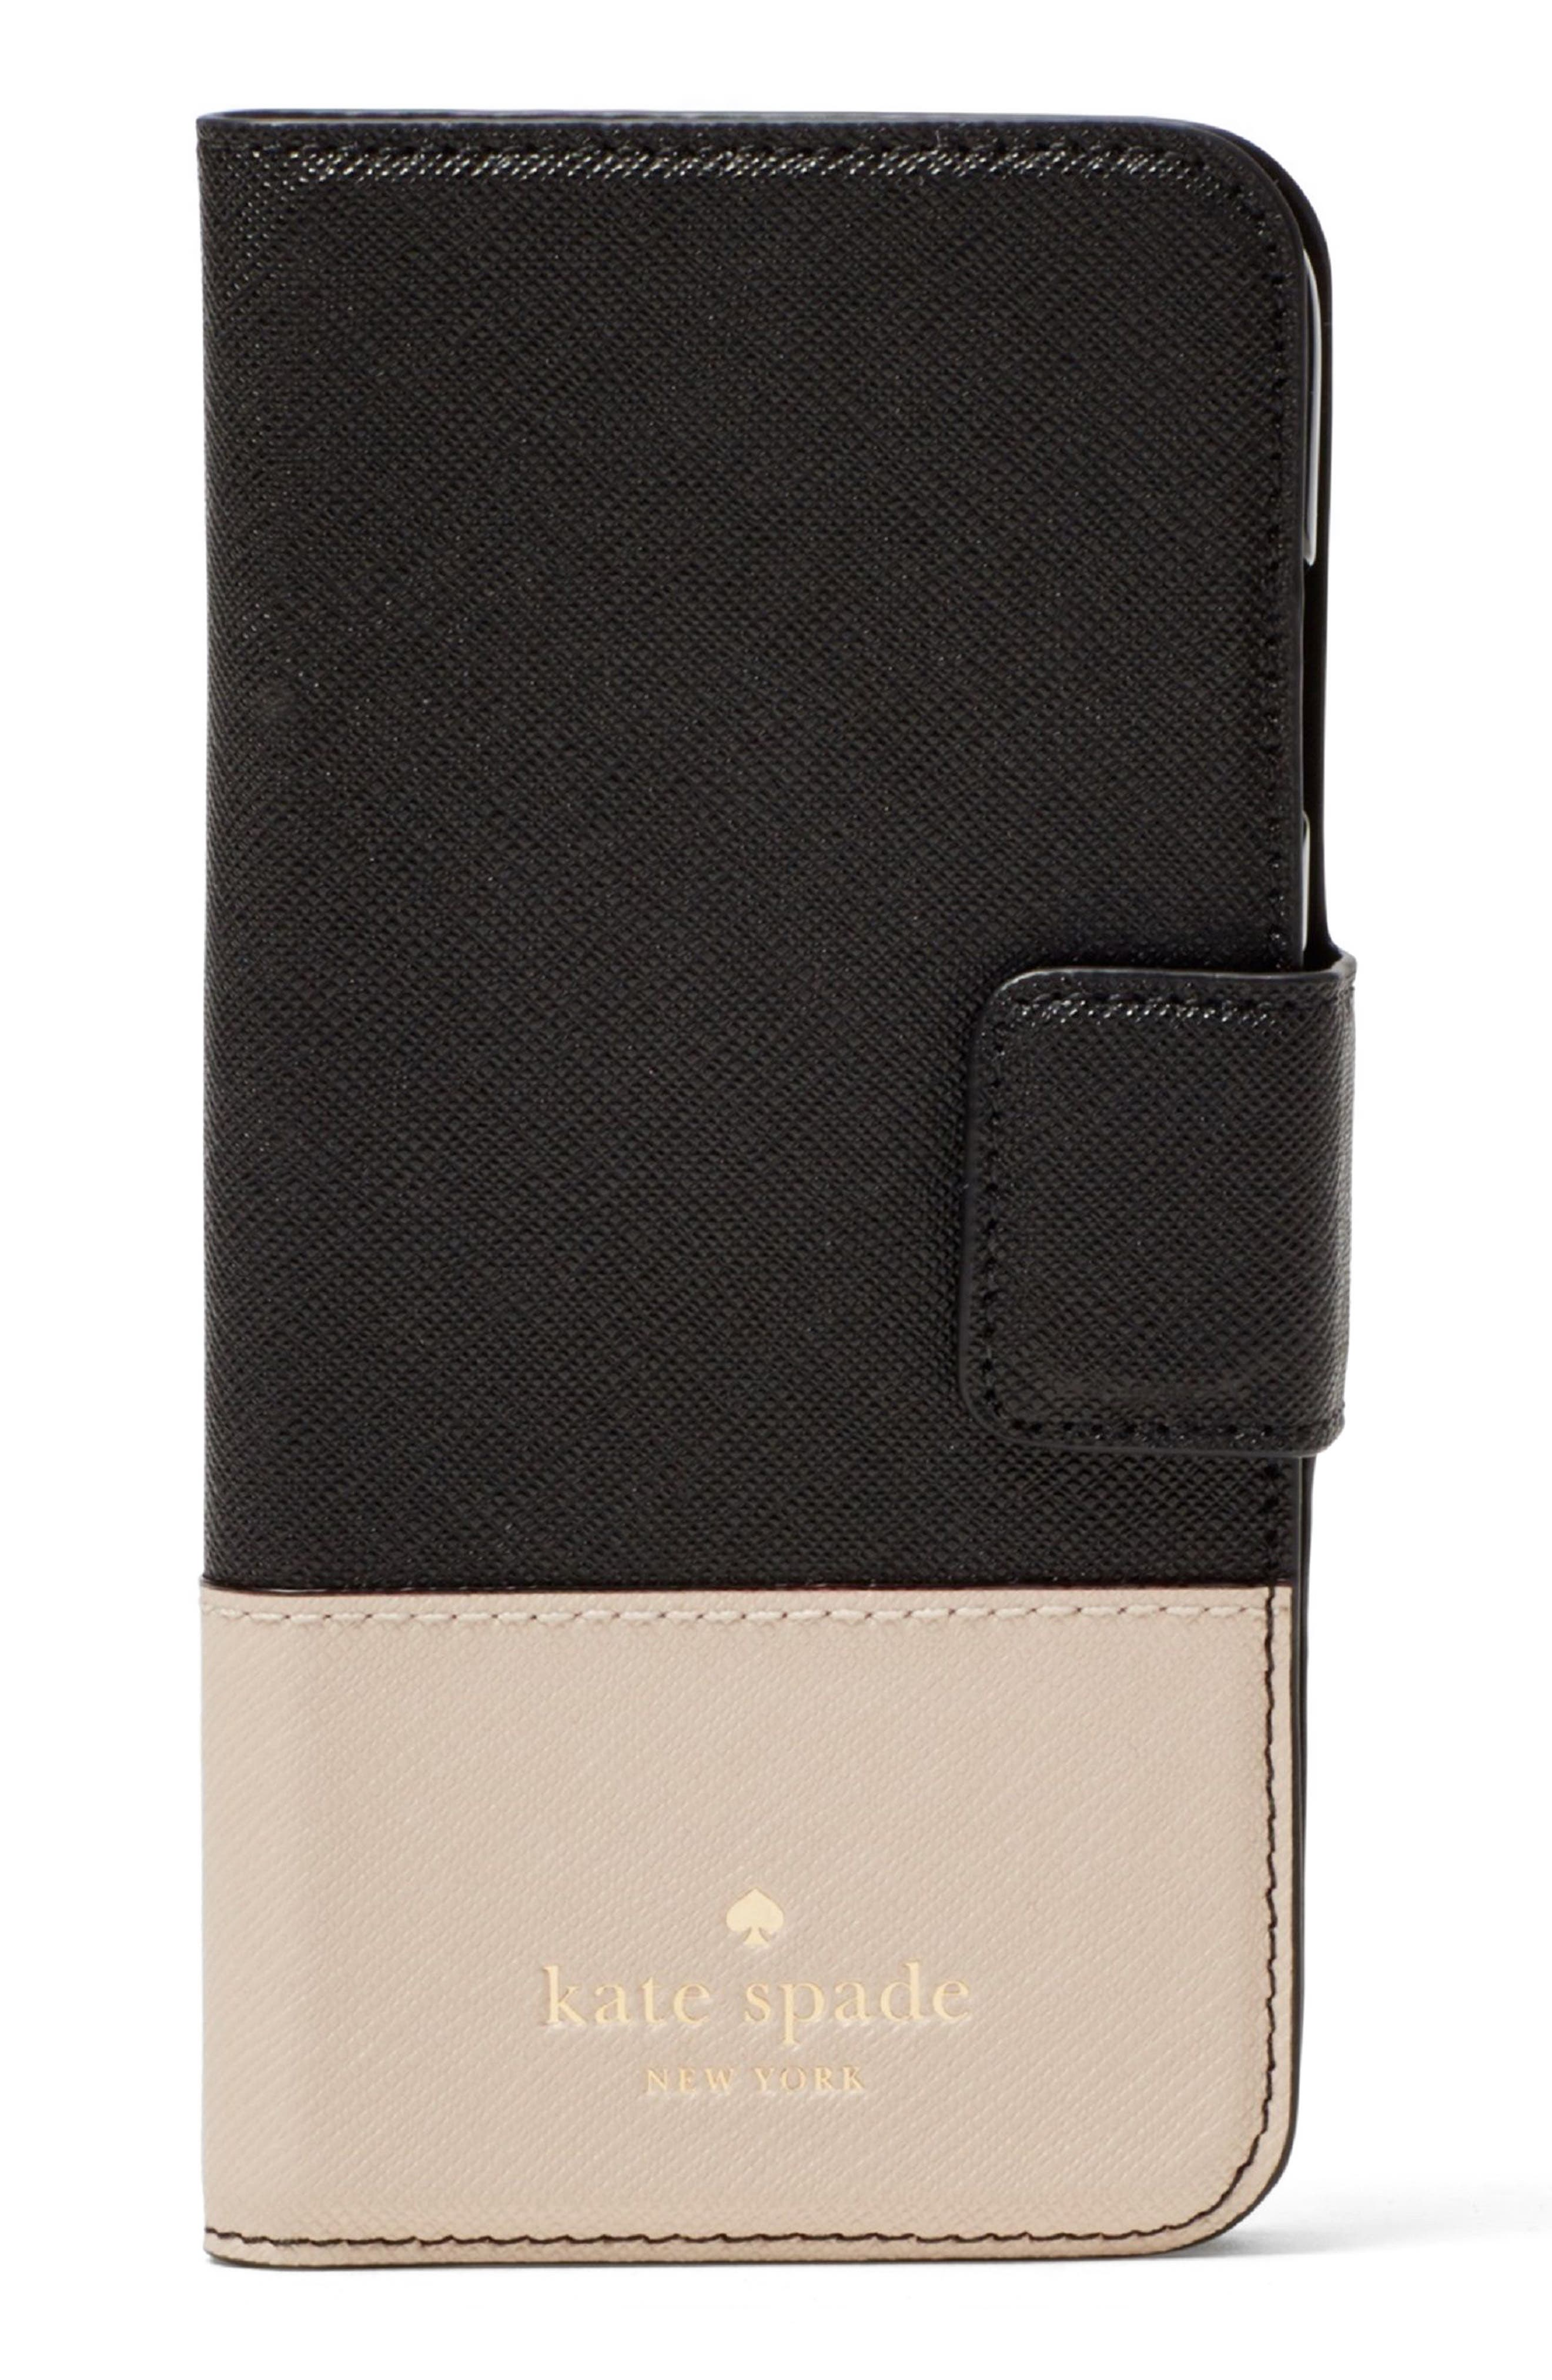 iphone 7 cell phone caseskate spade new york leather iphone 7 8 \u0026 7 8 plus case